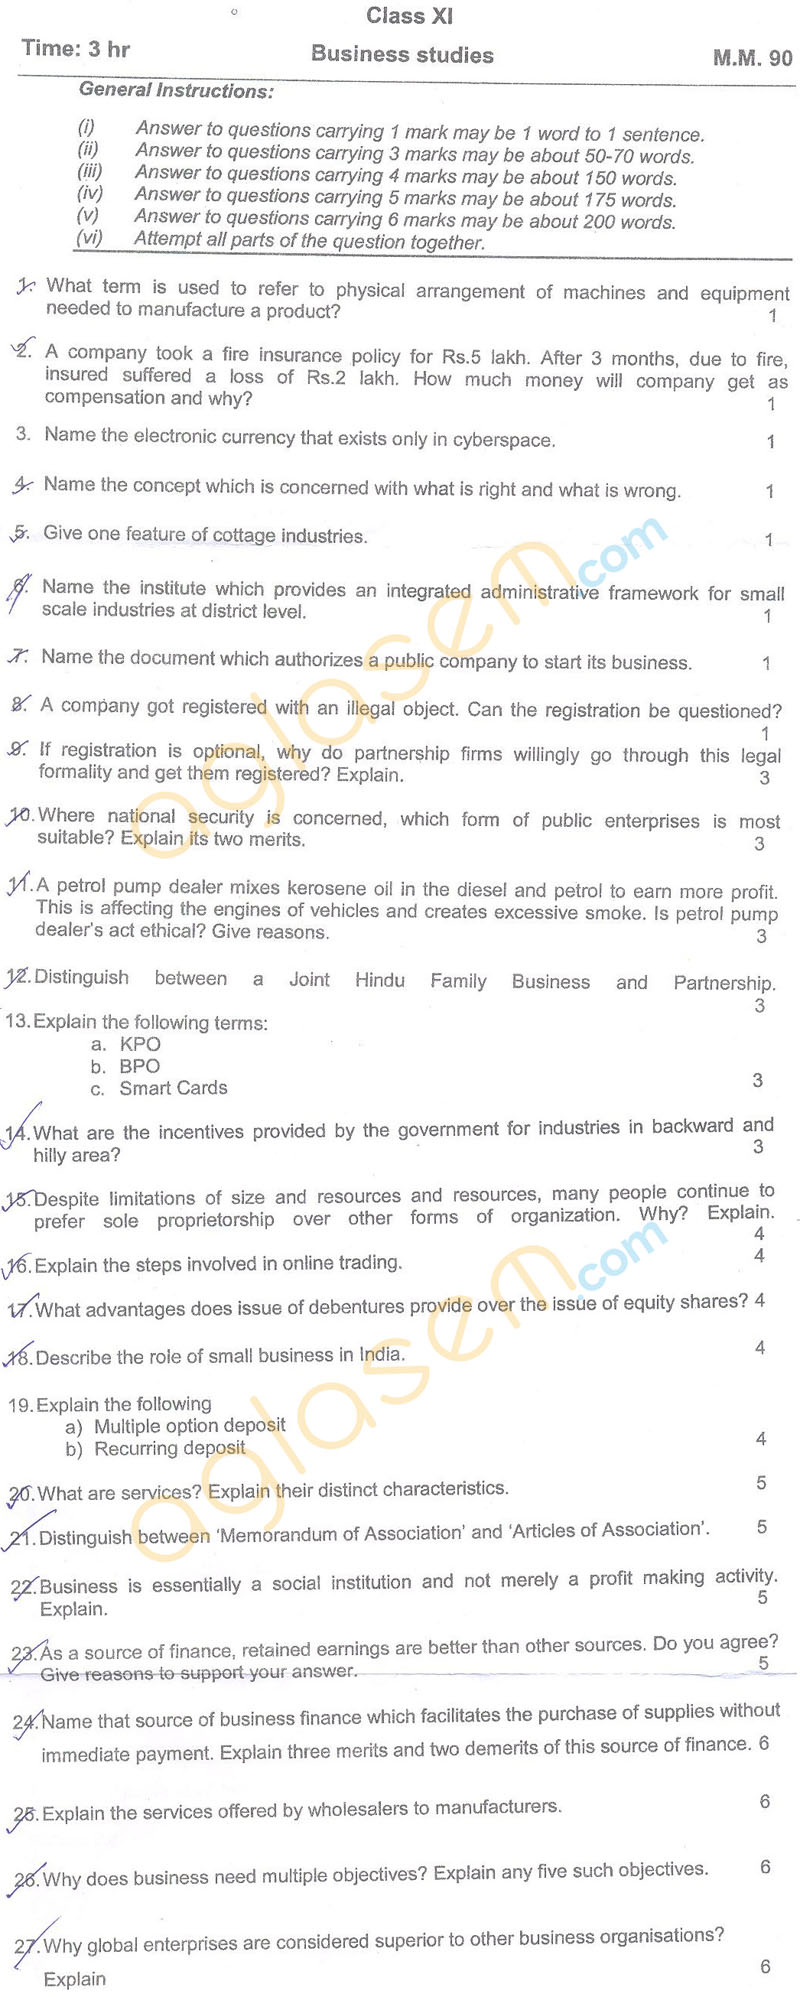 CBSE Class 11 Half Yearly Question Papers – Business Studies